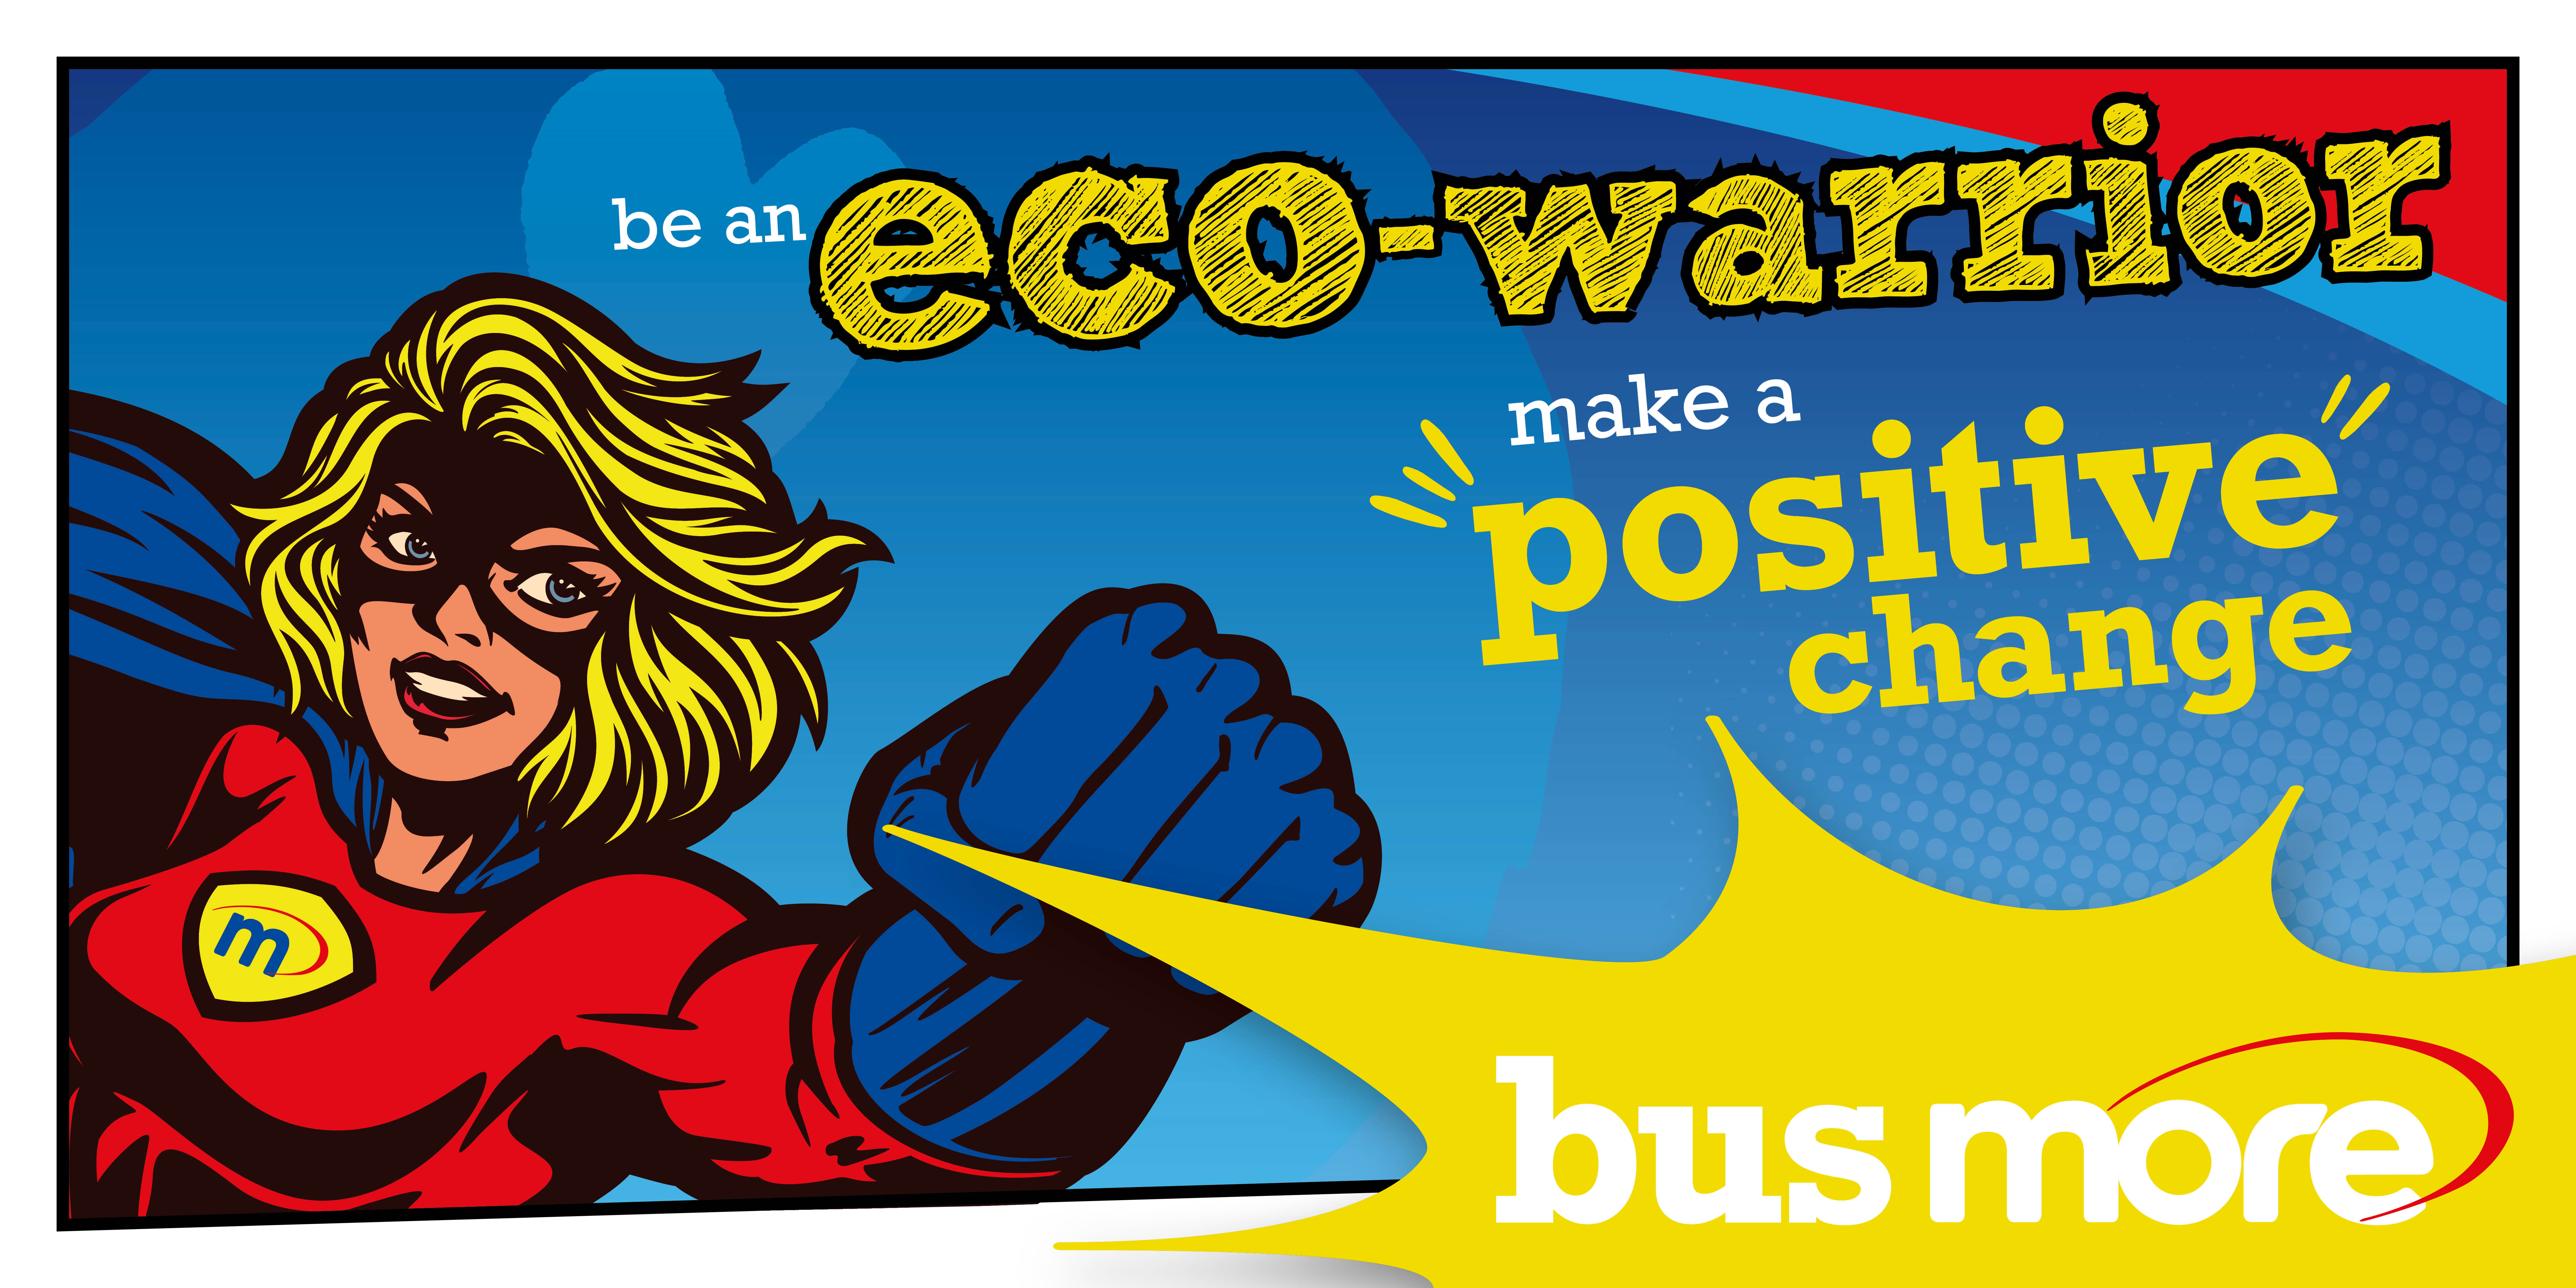 Illustration image of a morebus superhero reading 'Be an eco-warrior. Make a positive change.'